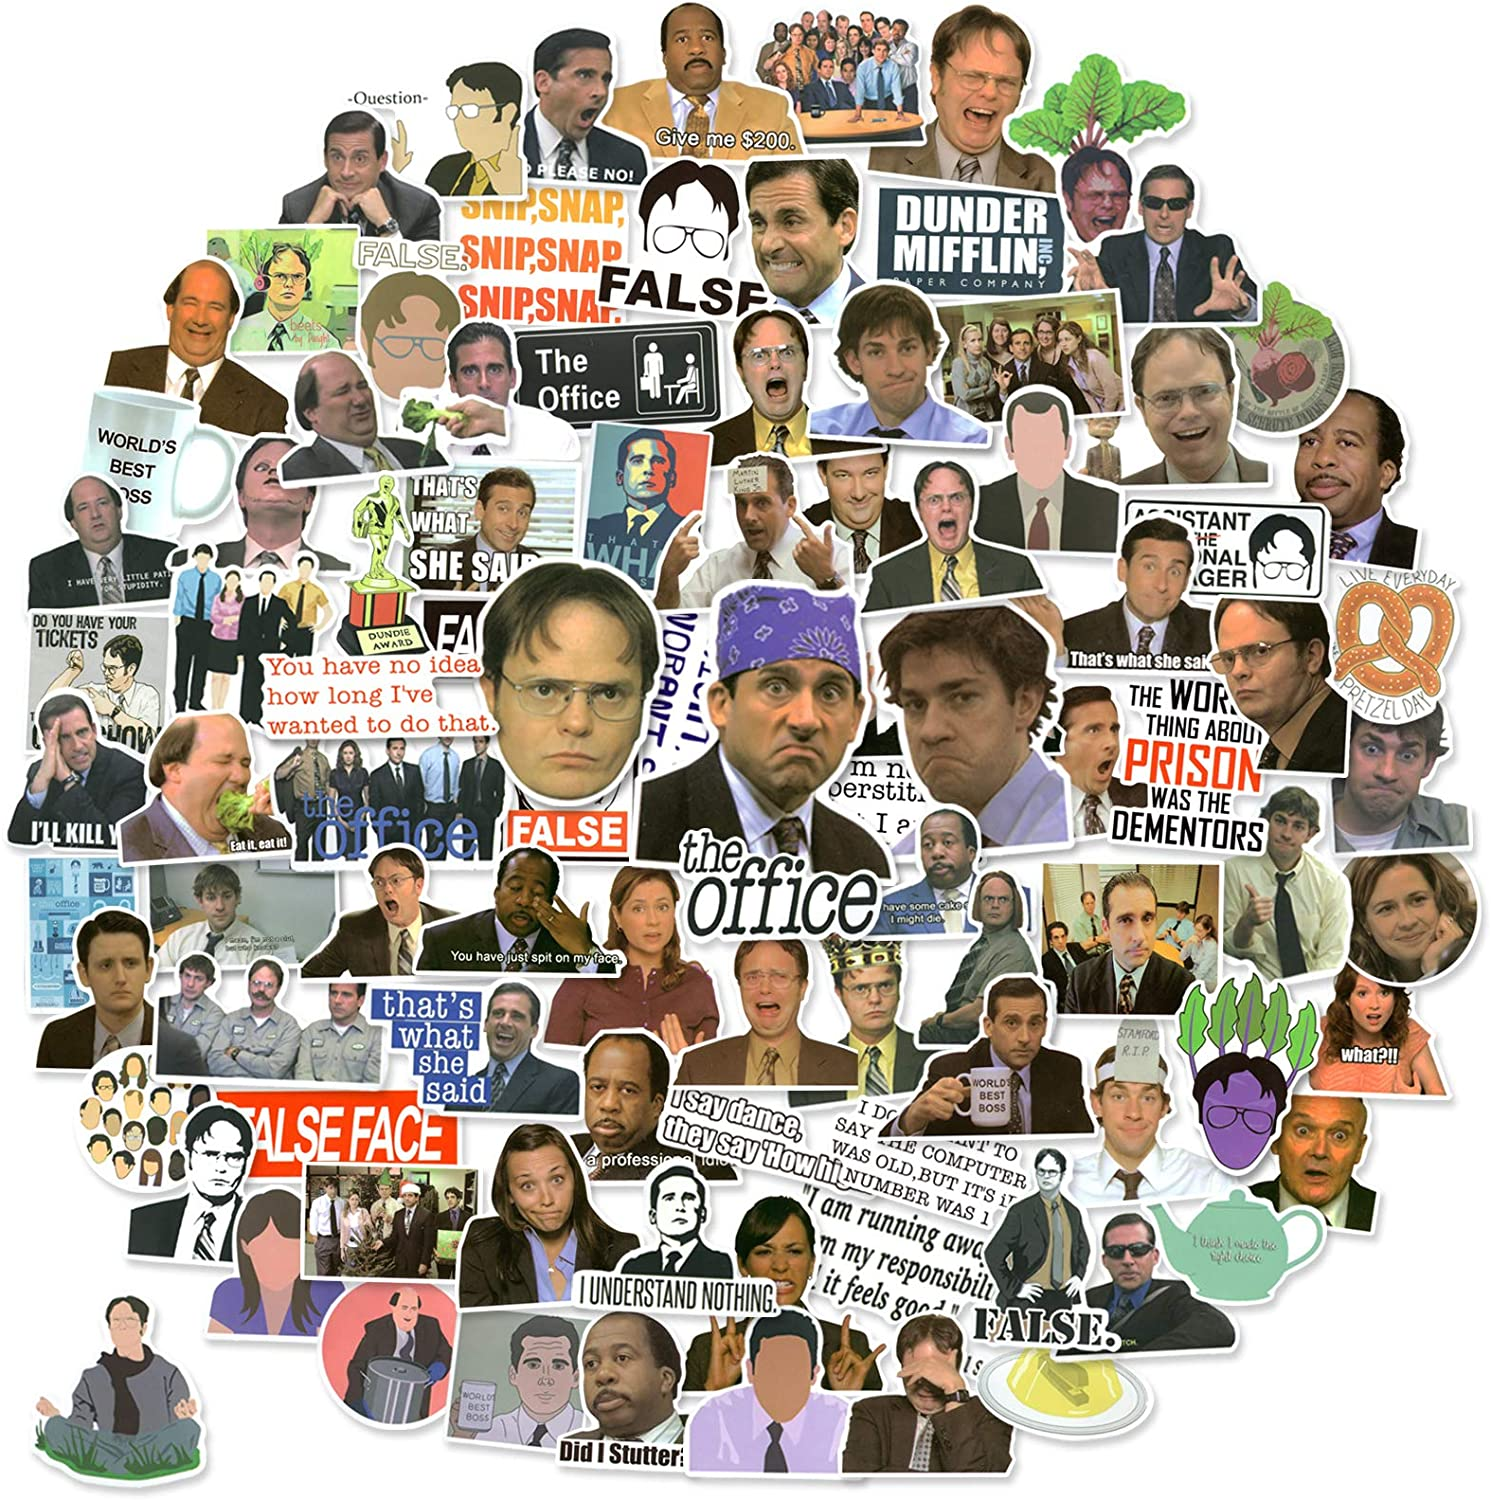 The Office Stickers Pack of 100 Stickers , The Office TV Show Merchandise Stickers for Water Bottle,Laptops, Computers, Flasks, Notebook, Phone Case